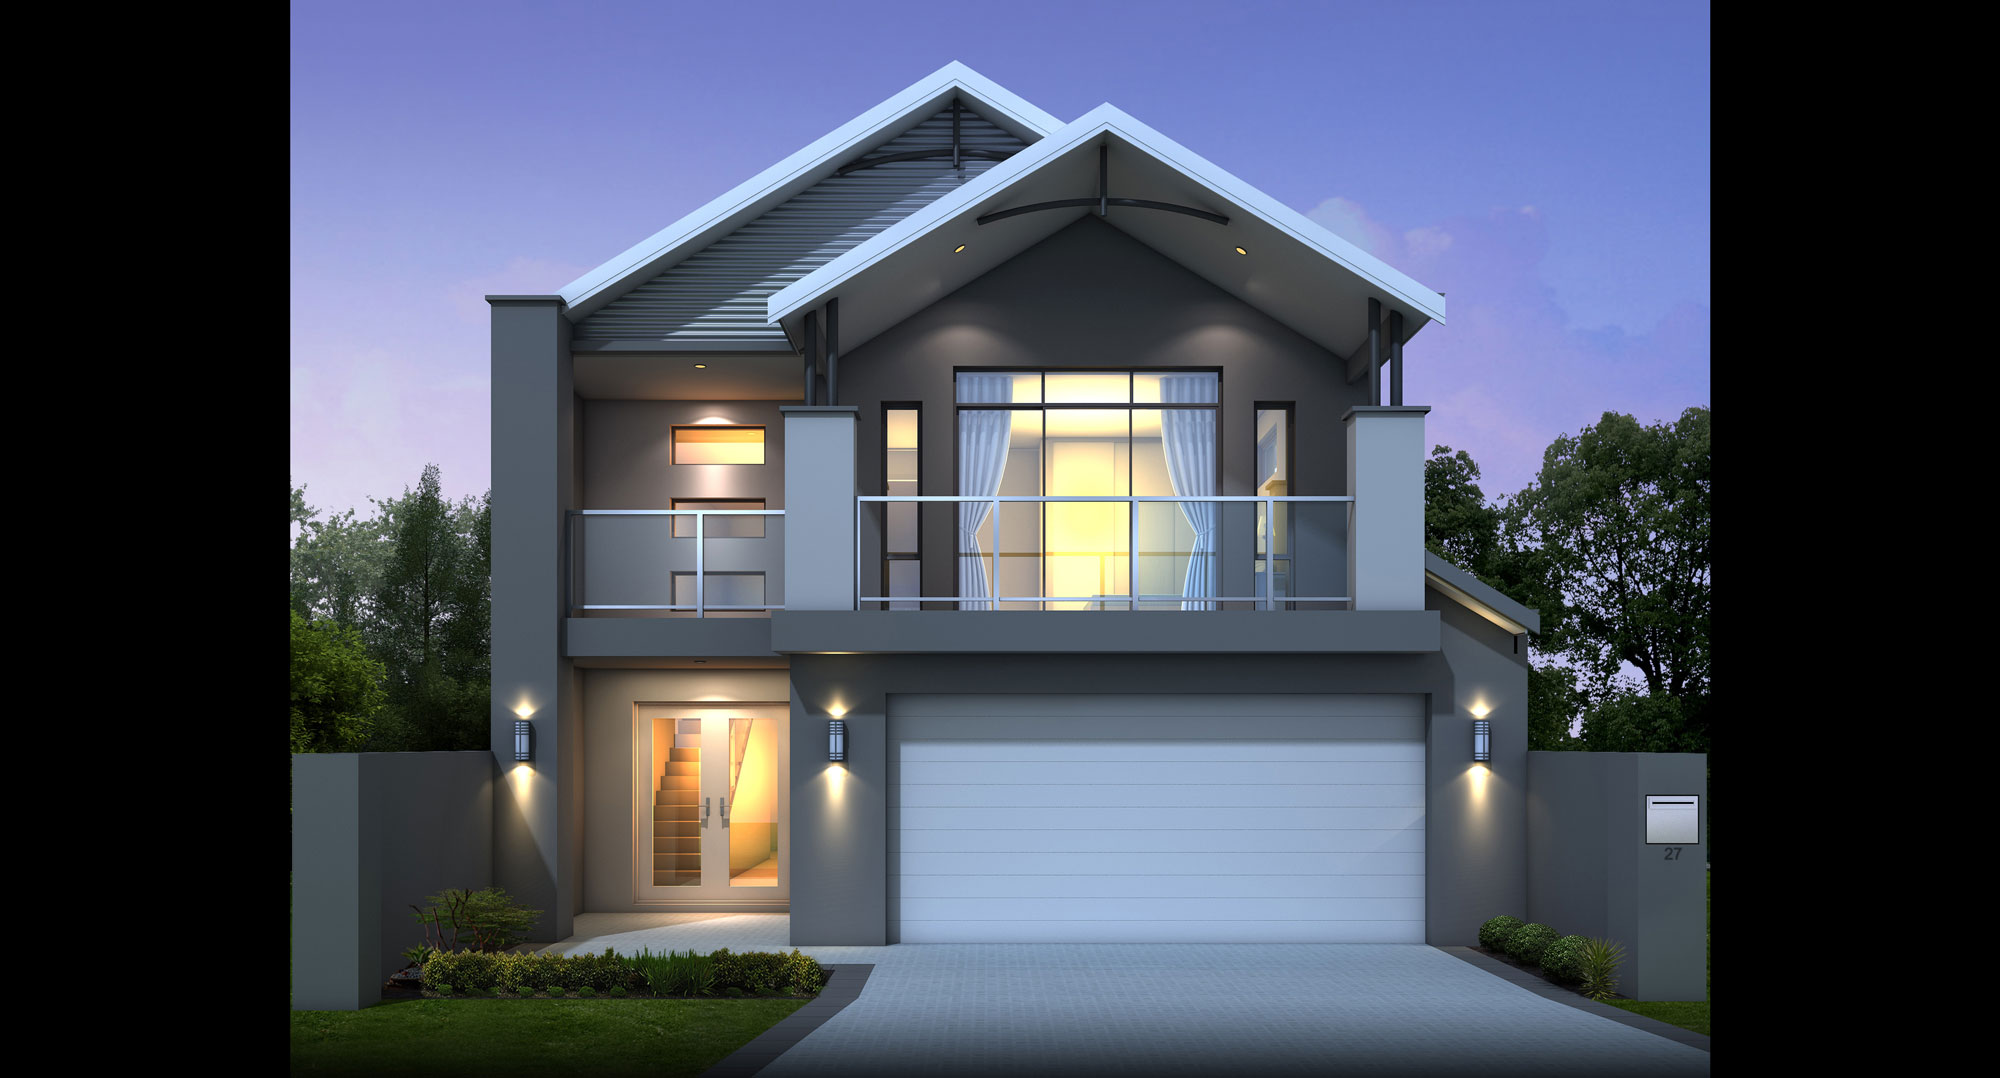 Narrow Lot Homes Perth, Display Houses & Designs | Great Living Homes